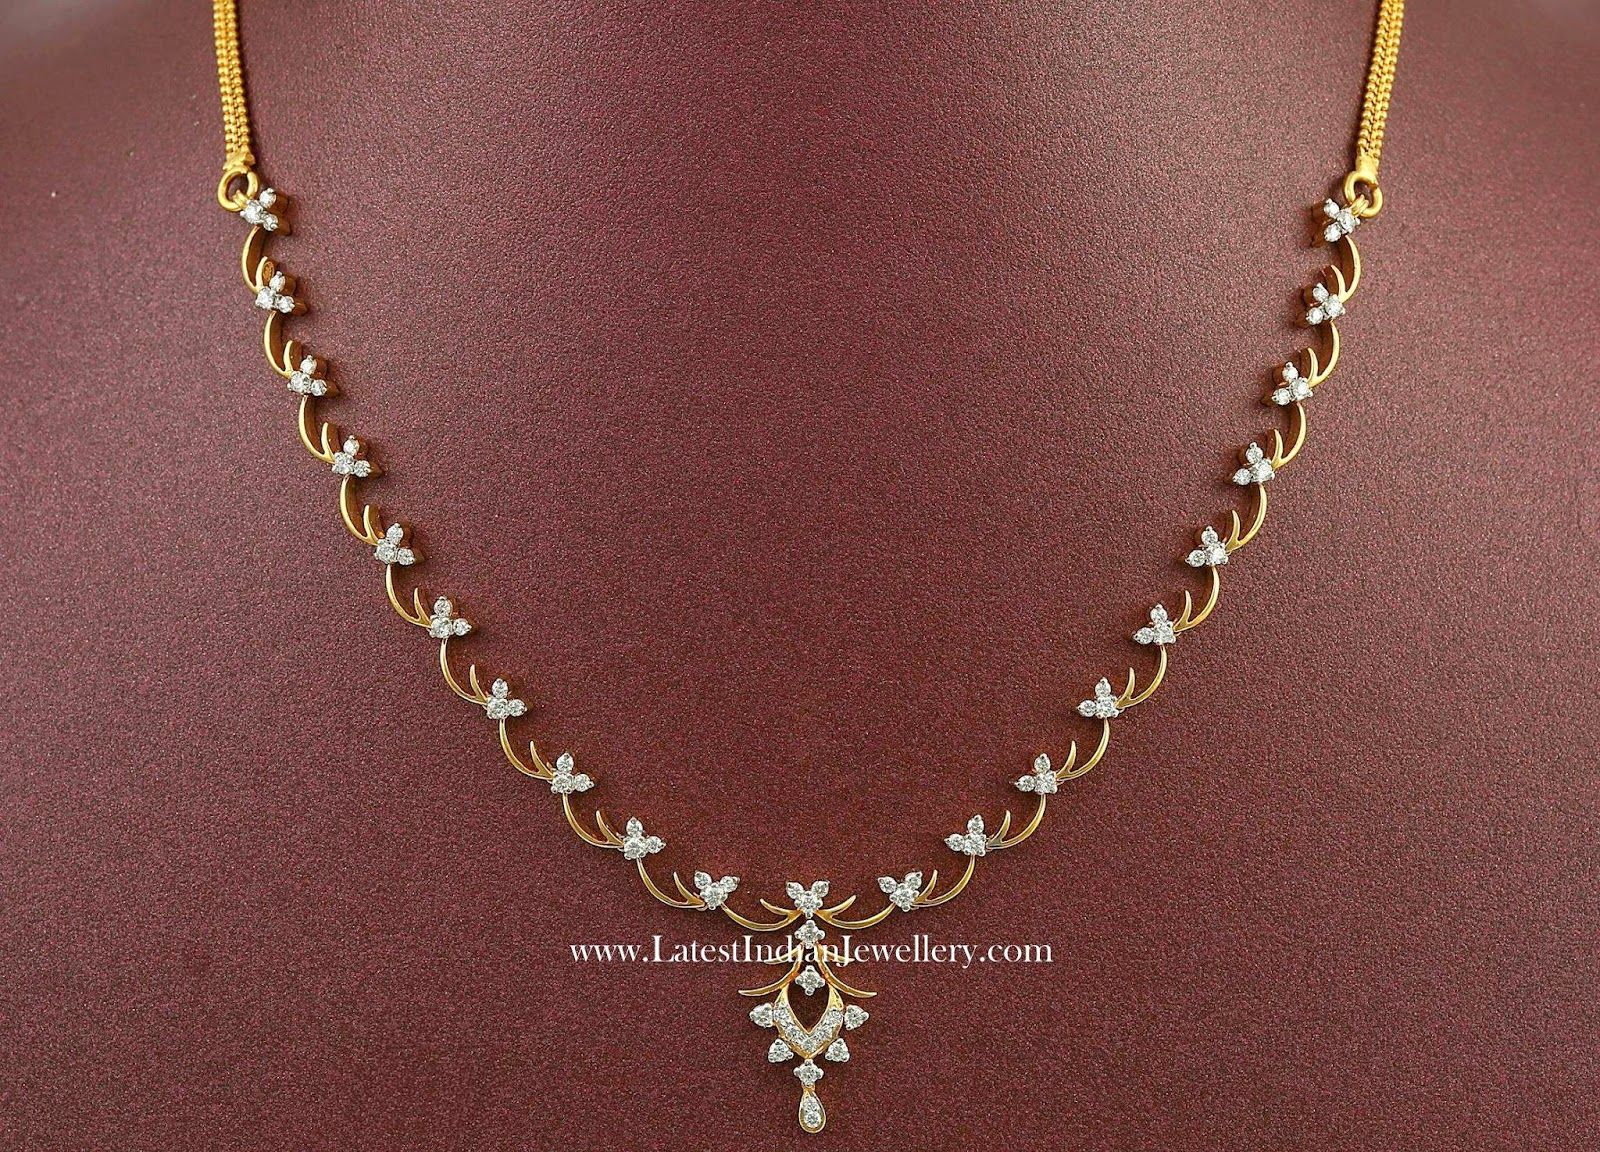 Affordable Indian Diamond Necklace Designs Gold Necklace Simple